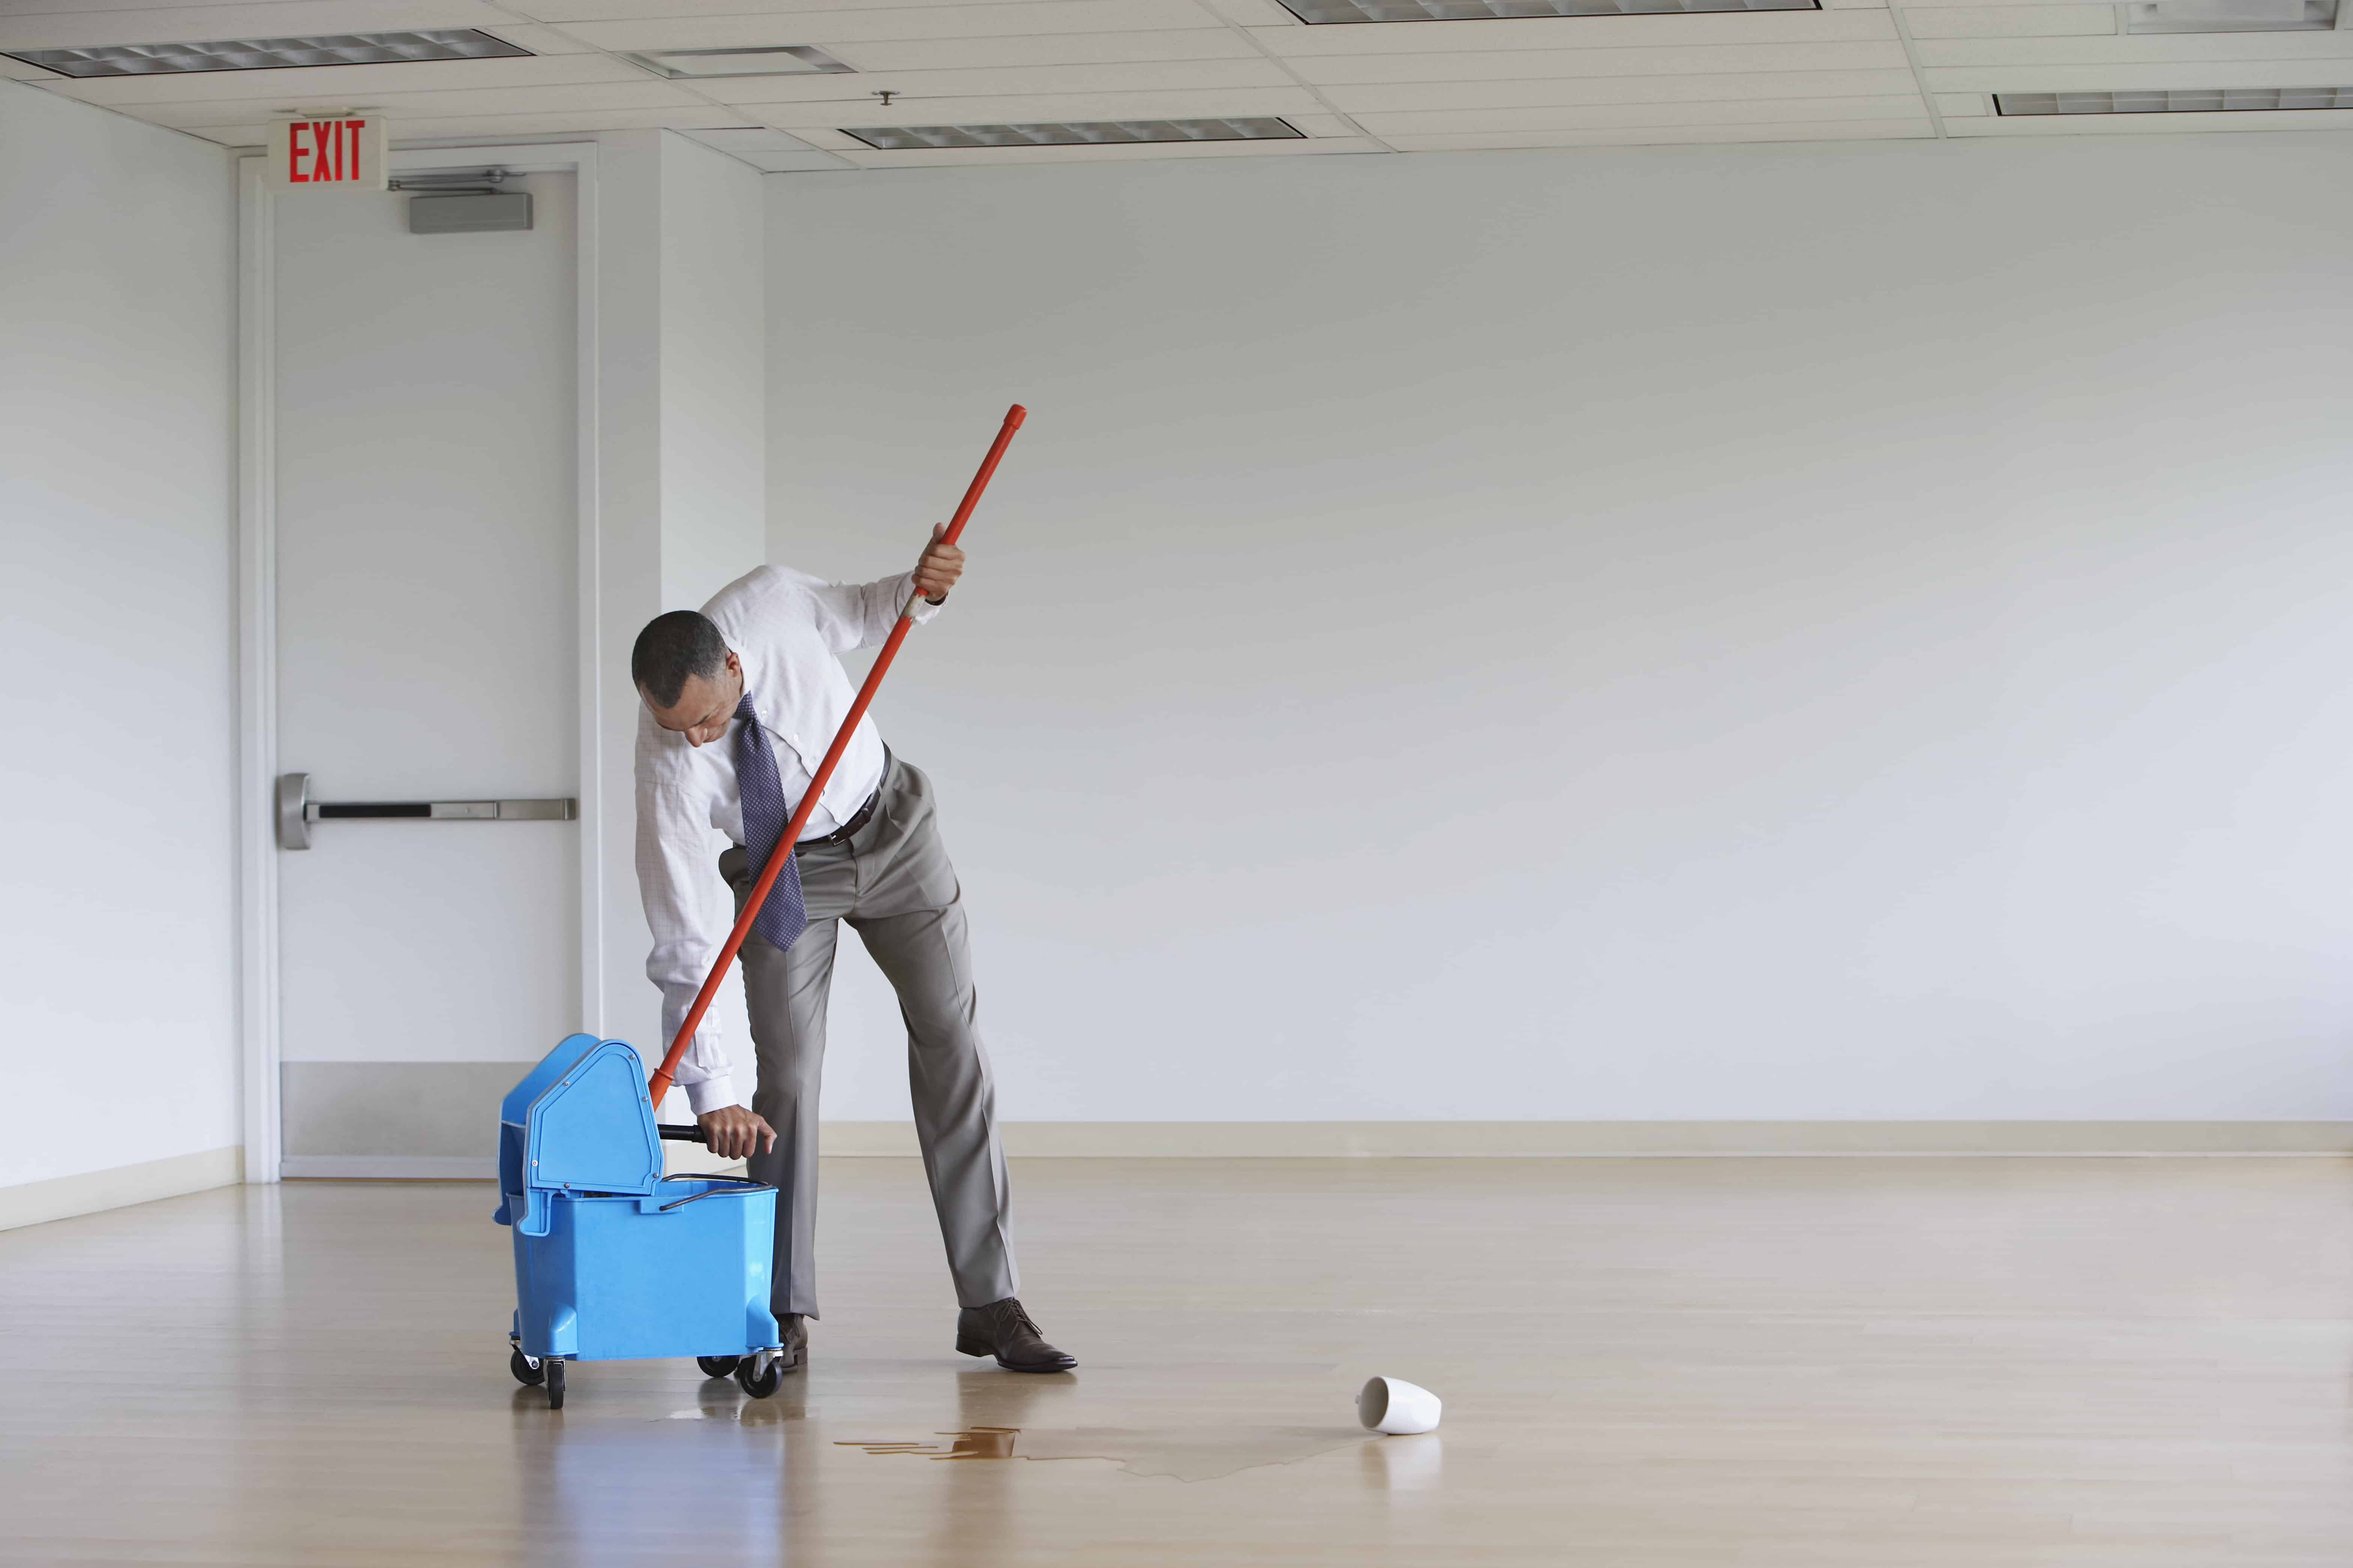 Business man mopping in empty room